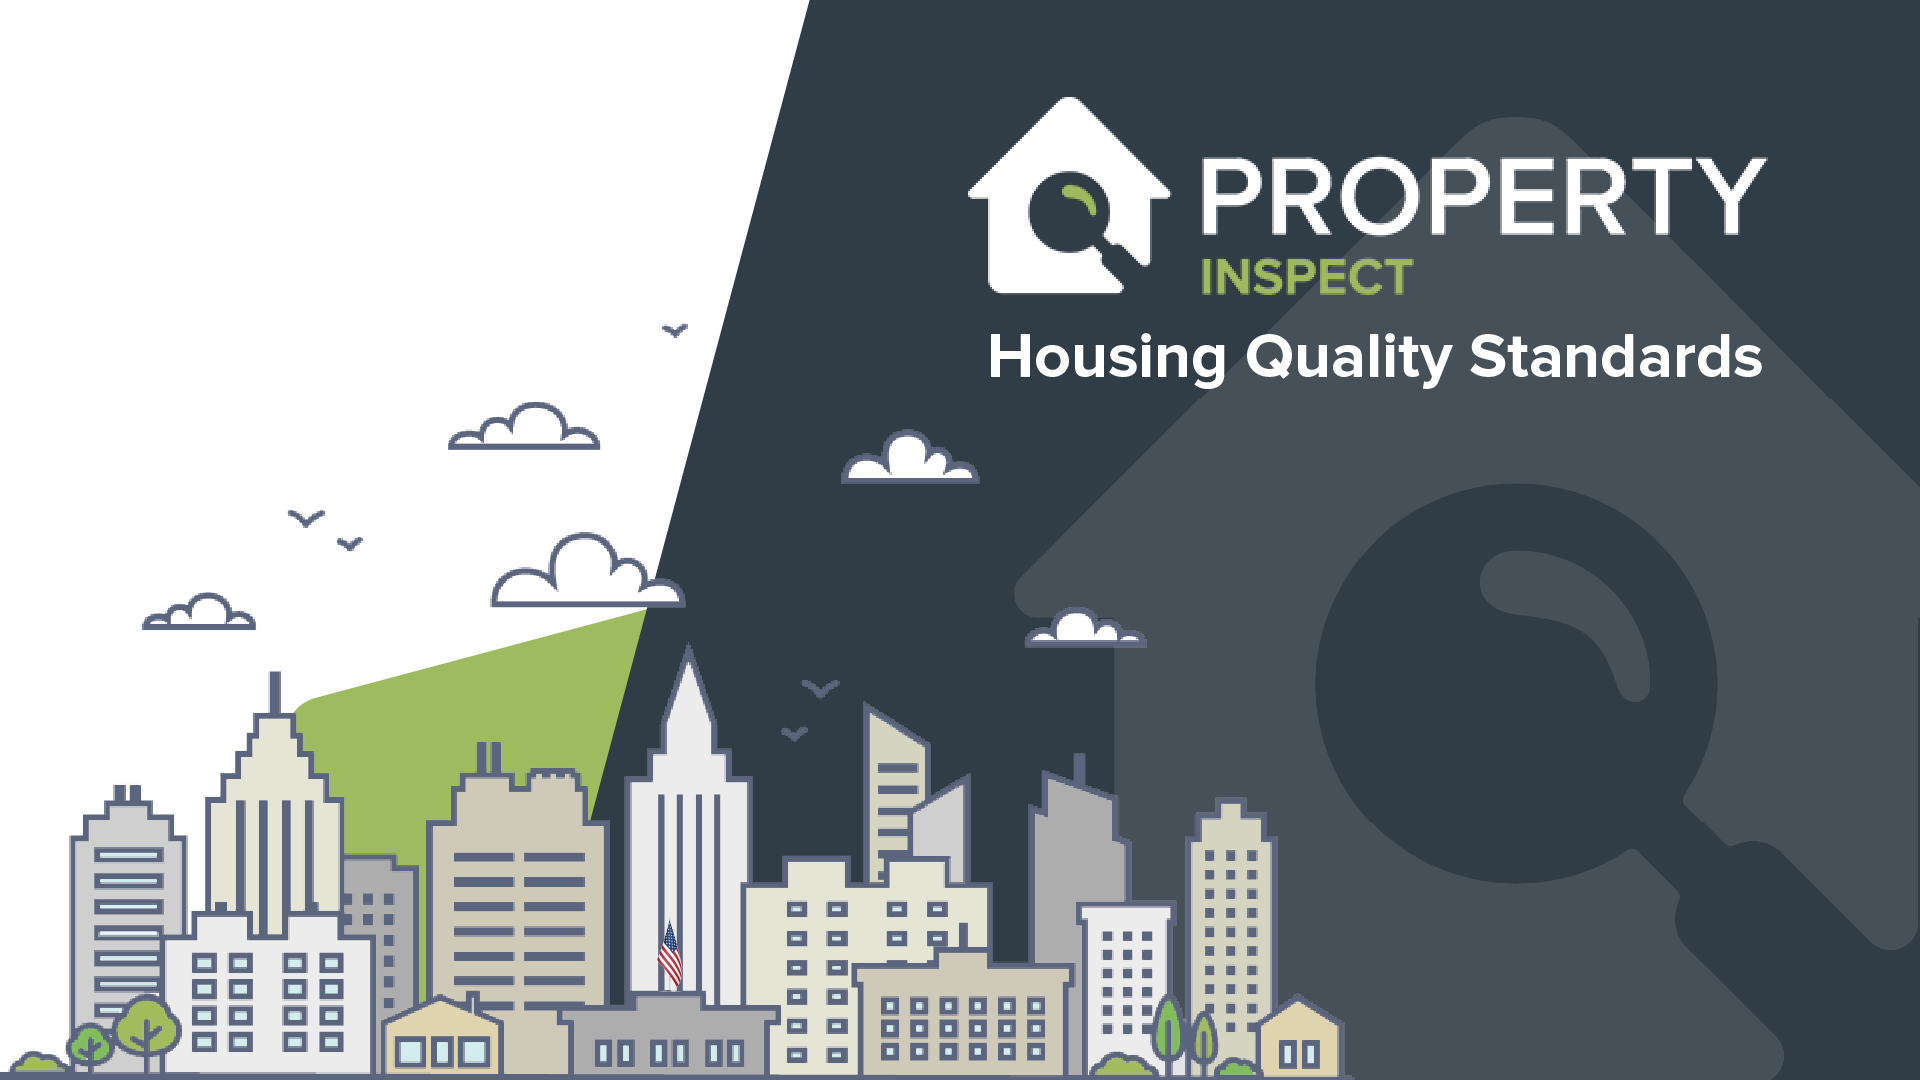 Property Inspect Automates HUD's Housing Quality Standards (HQS) Reporting Processes for US Municipalities.